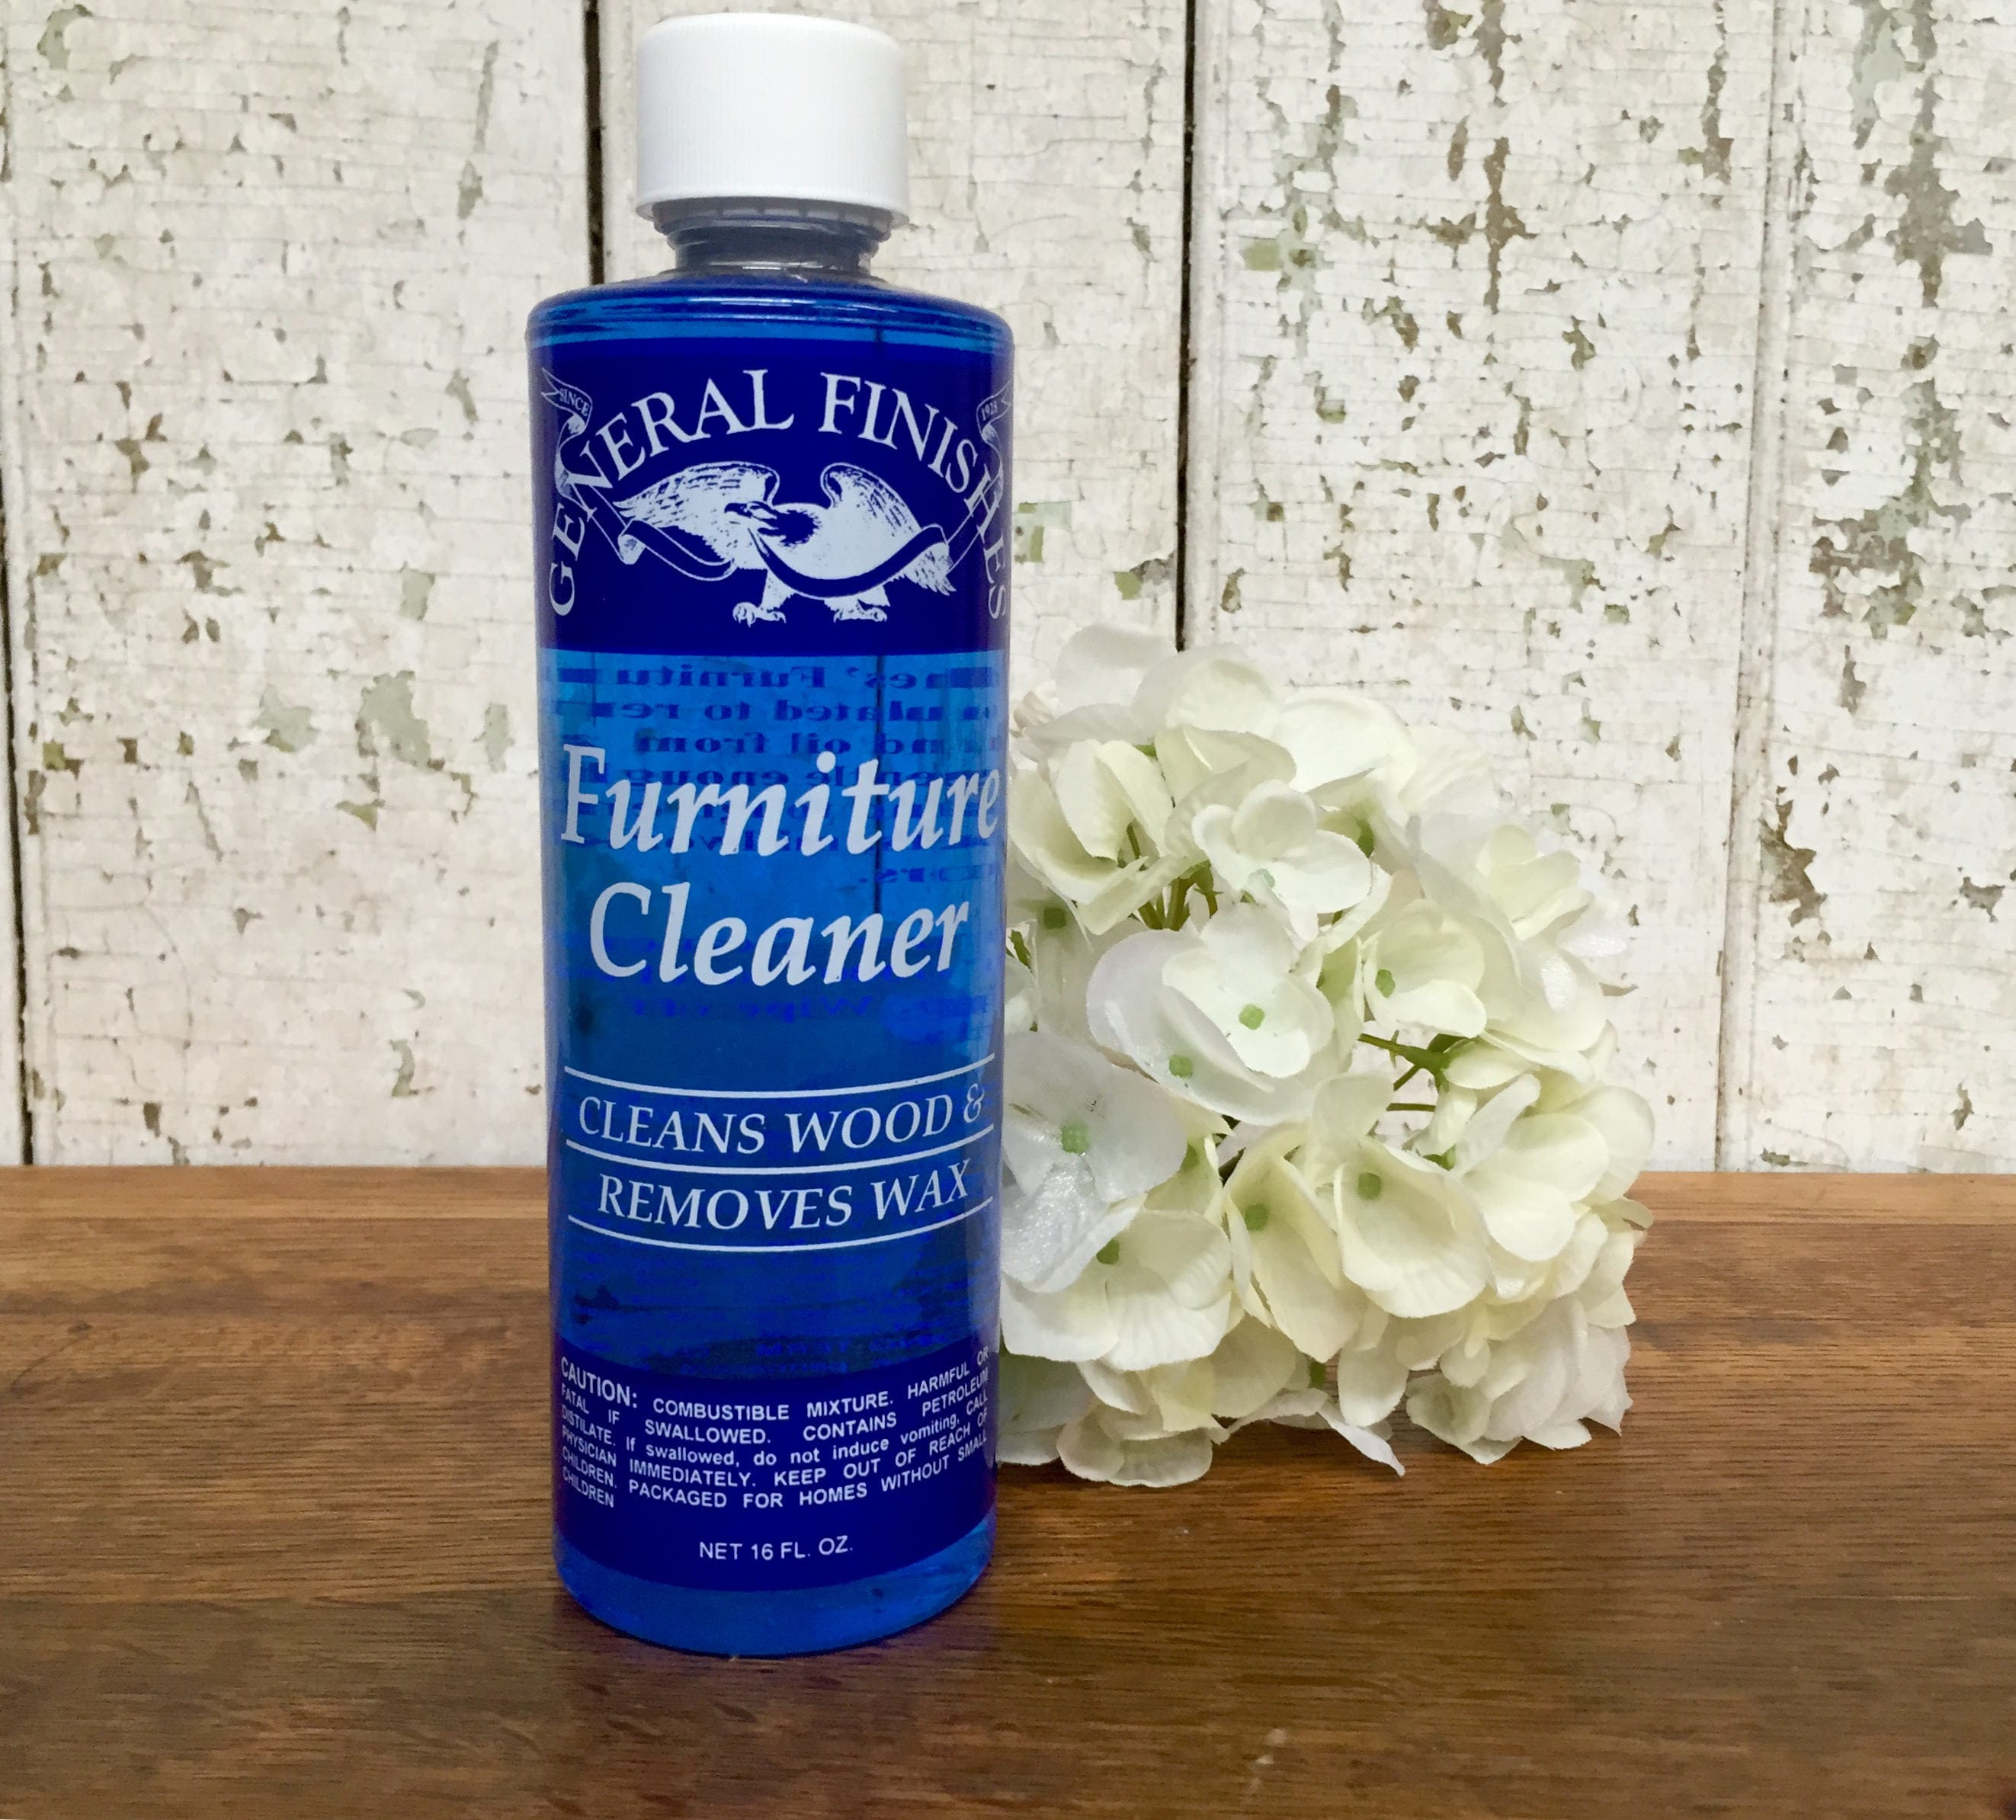 Furniture Wax Remover General Finishes Wood Furniture Cleaner